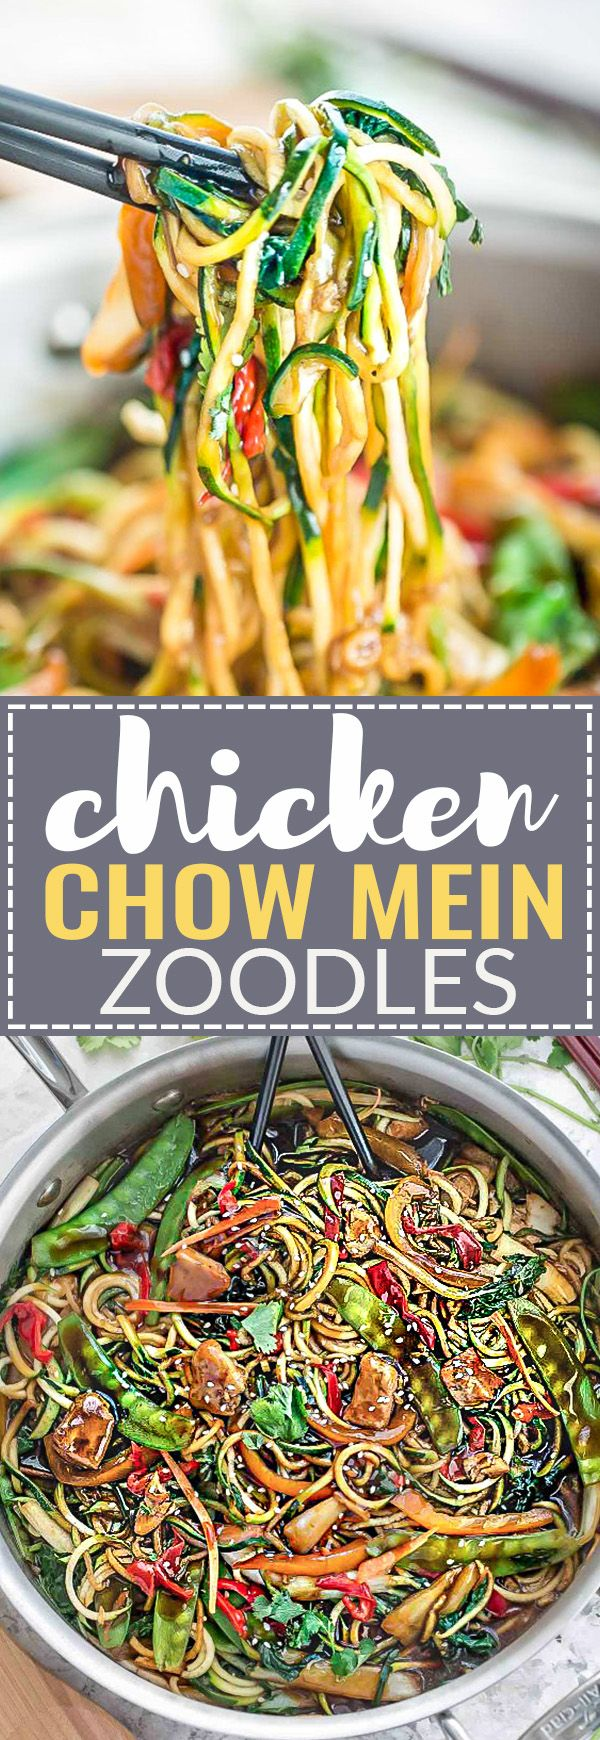 Chicken Chow Mein Zoodles {Zucchini Noodles} is the perfect easy and healthy weeknight meal! Best of all, it comes together in about 30 minutes in just one pot using lower carb spiralized vegetables and the most amazing authentic sauce! Forget calling restaurant takeout, this recipe is so much better with authentic flavors. Seriously the best! Weekly meal prep for the week and leftovers are great for lunch bowls for work or school.